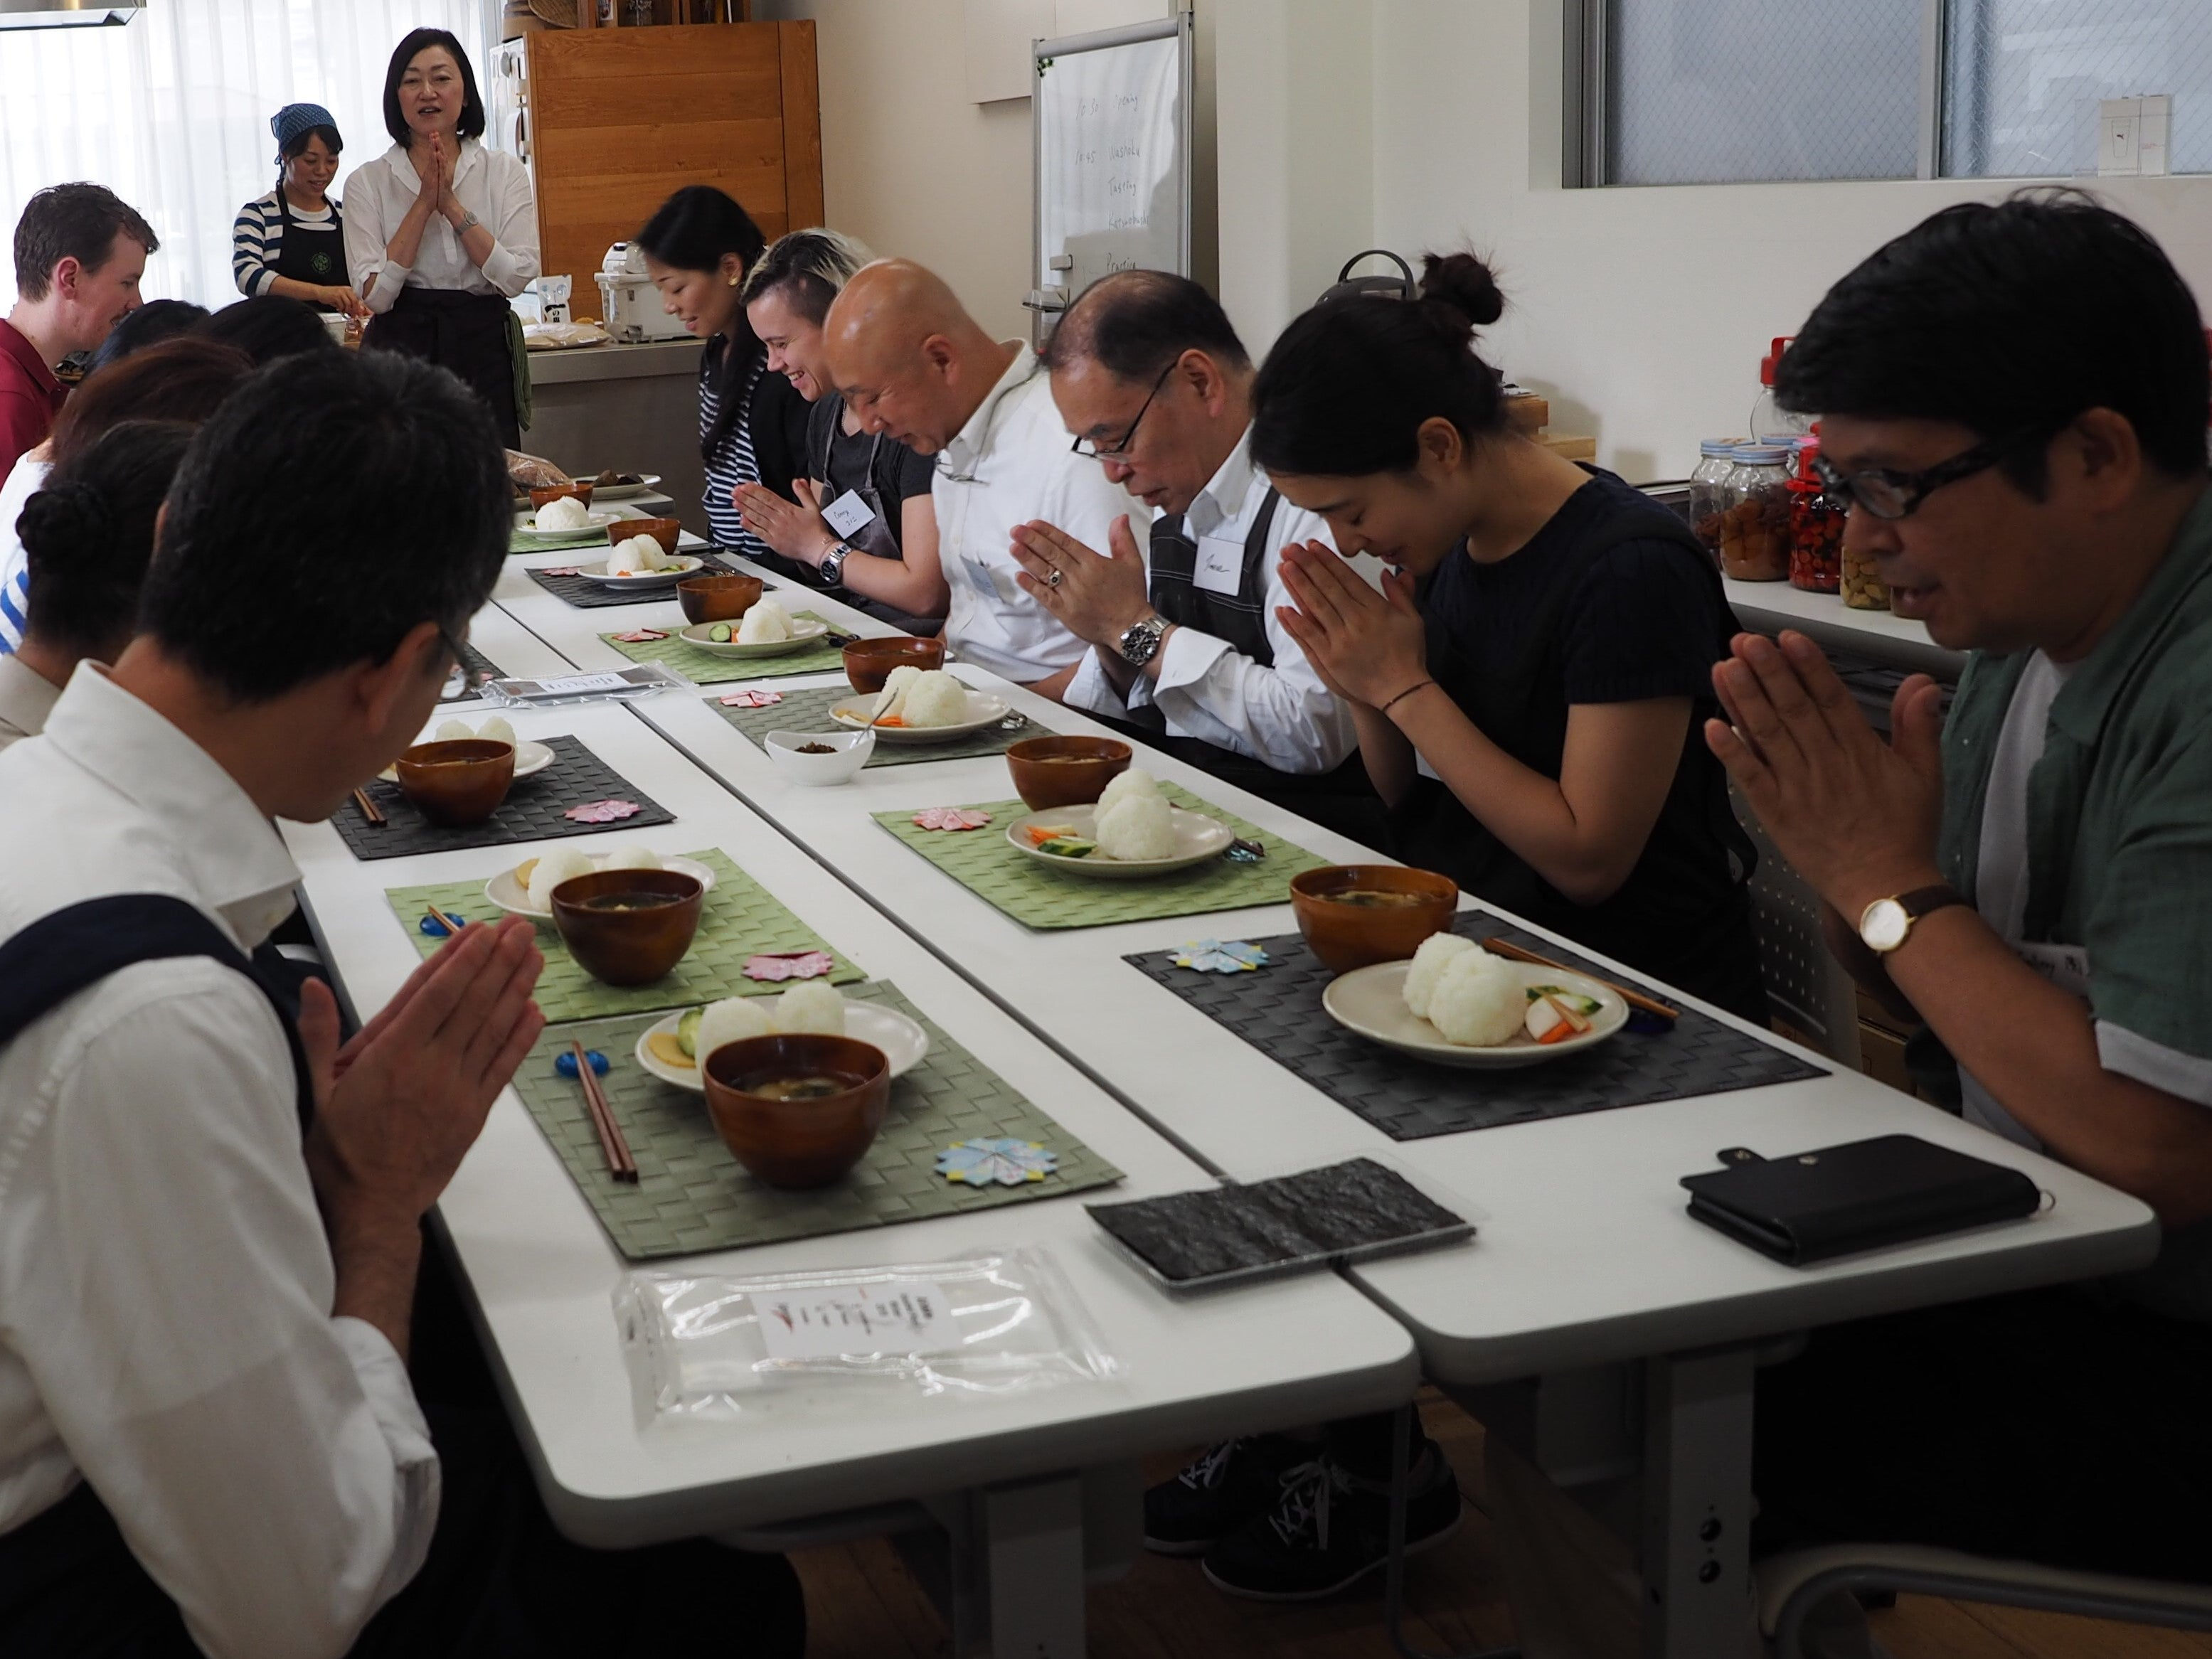 Let's learn the basics of WASHOKU【Dashi】16:30-19:30 on September 28, 2018